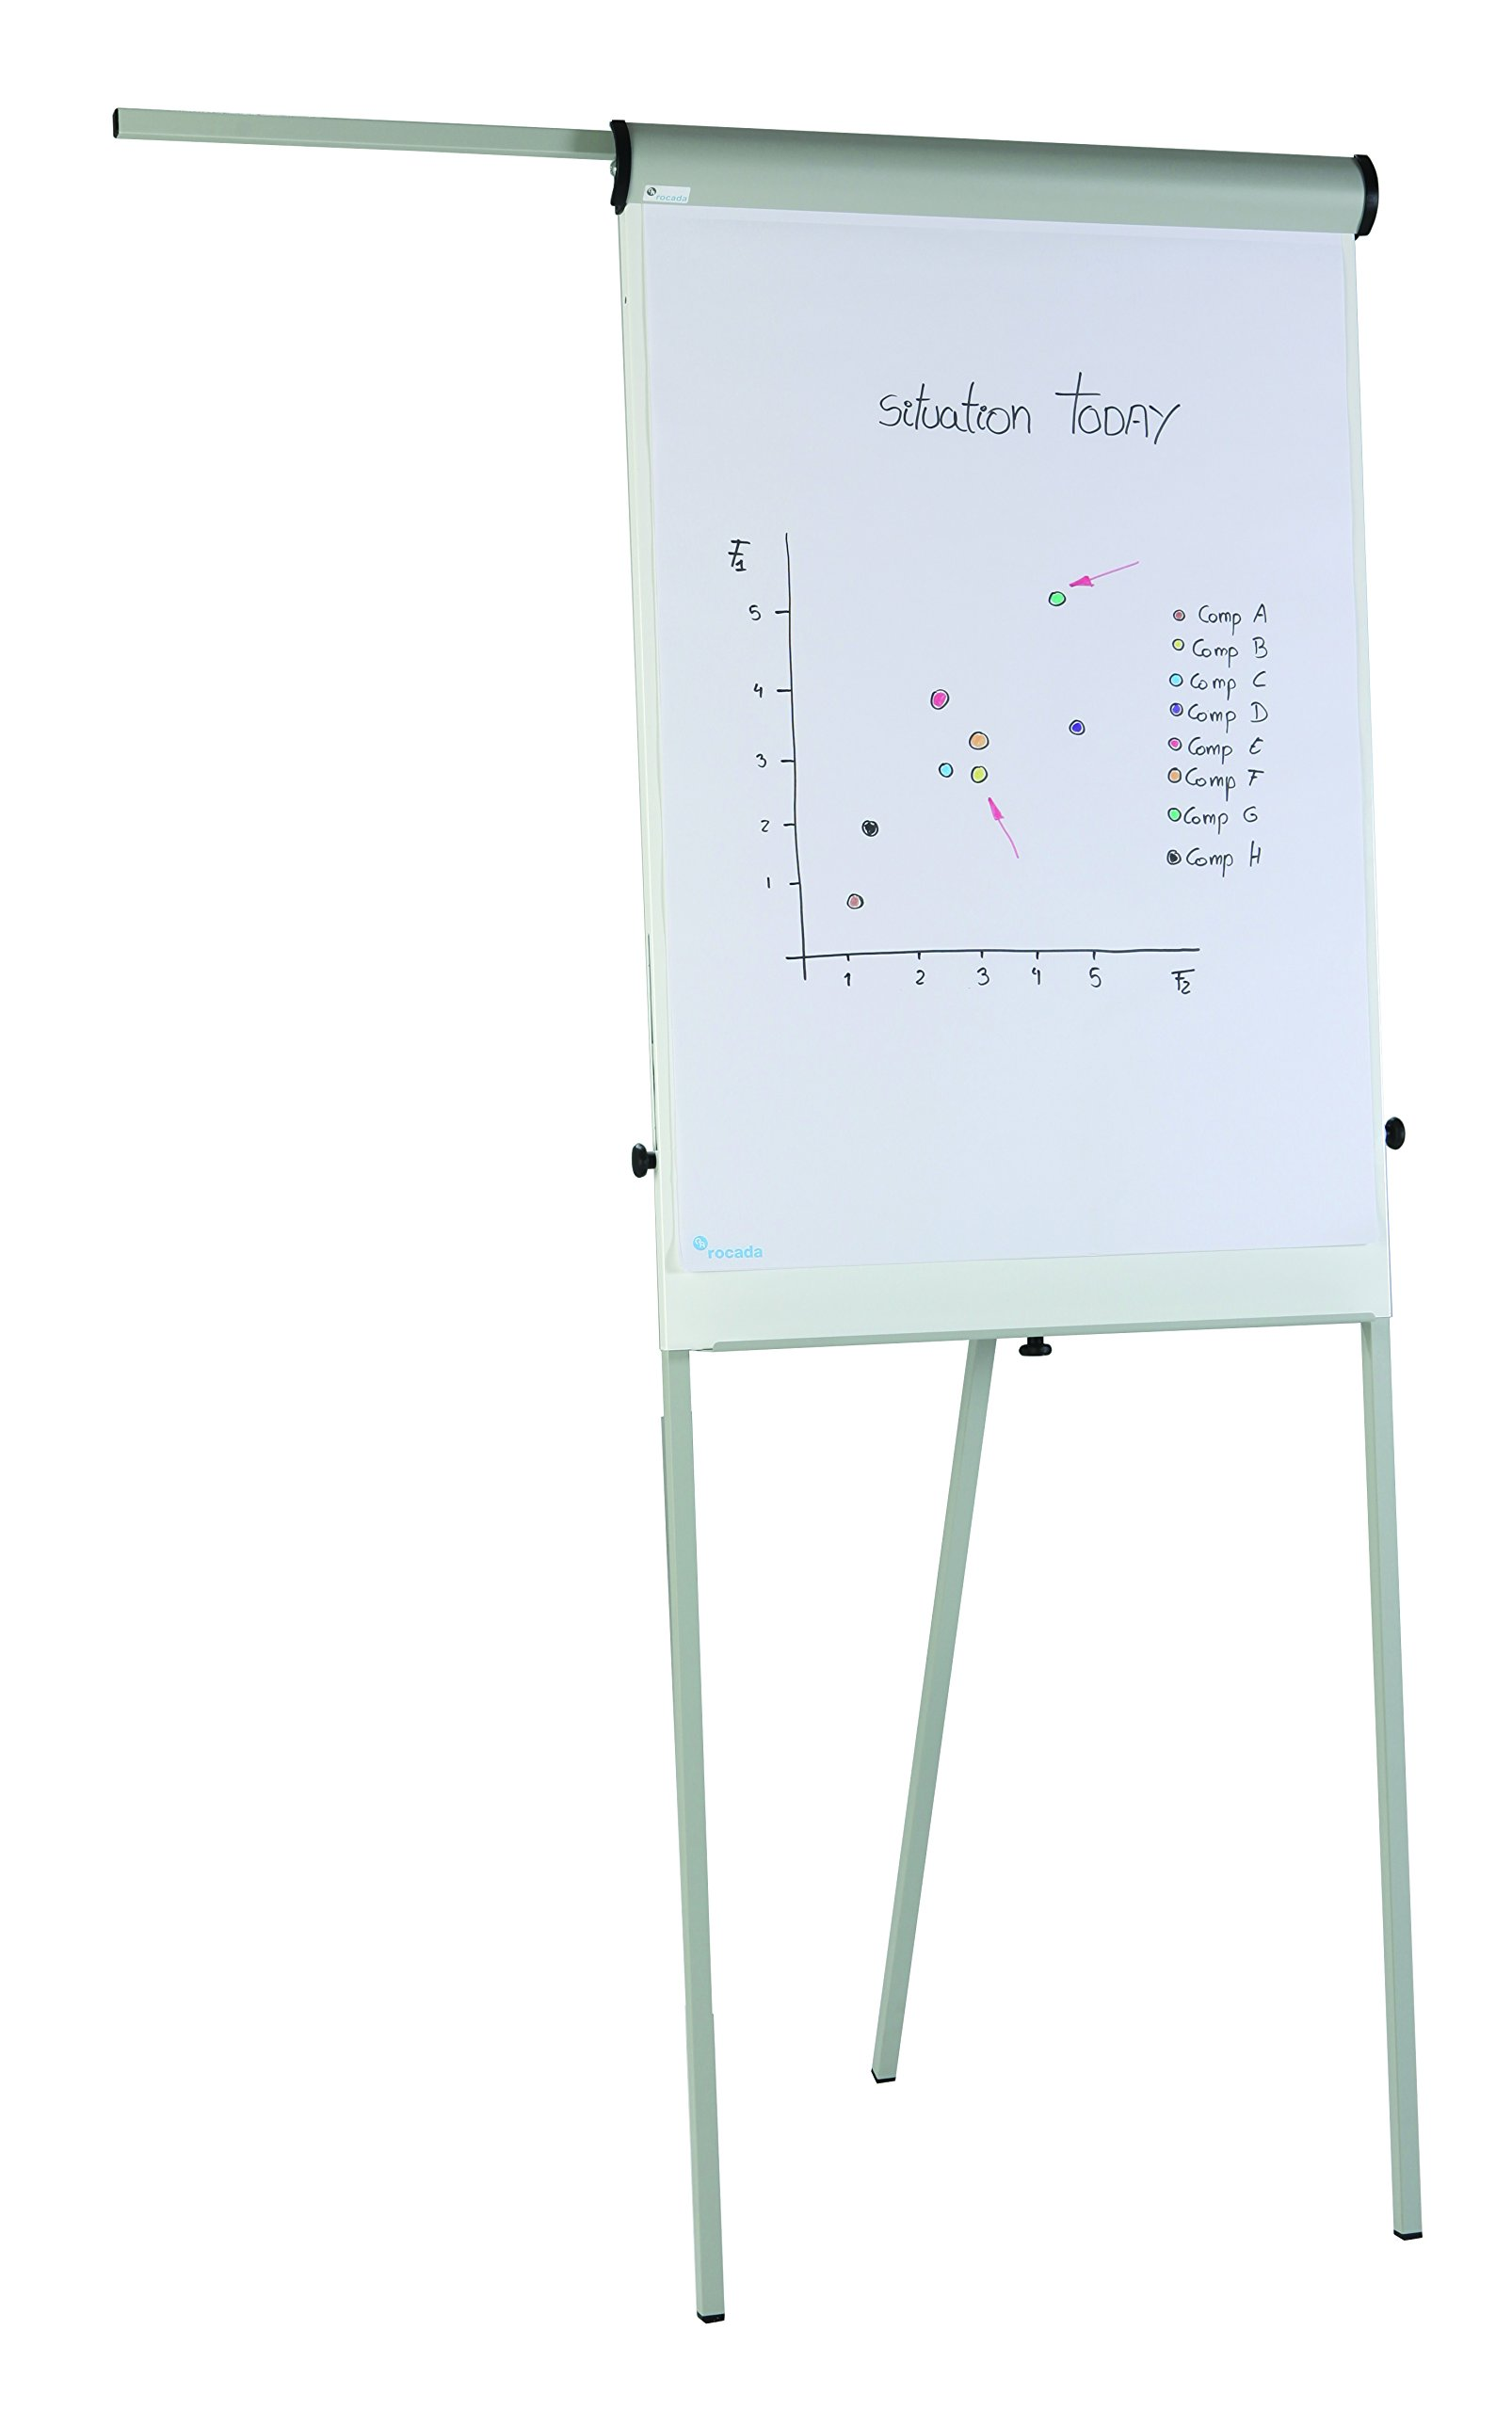 ROCADA Height Adjustable Flipchart, Height Adjusts from 67 - 74-4/5 Inches, Grey (RD-610)